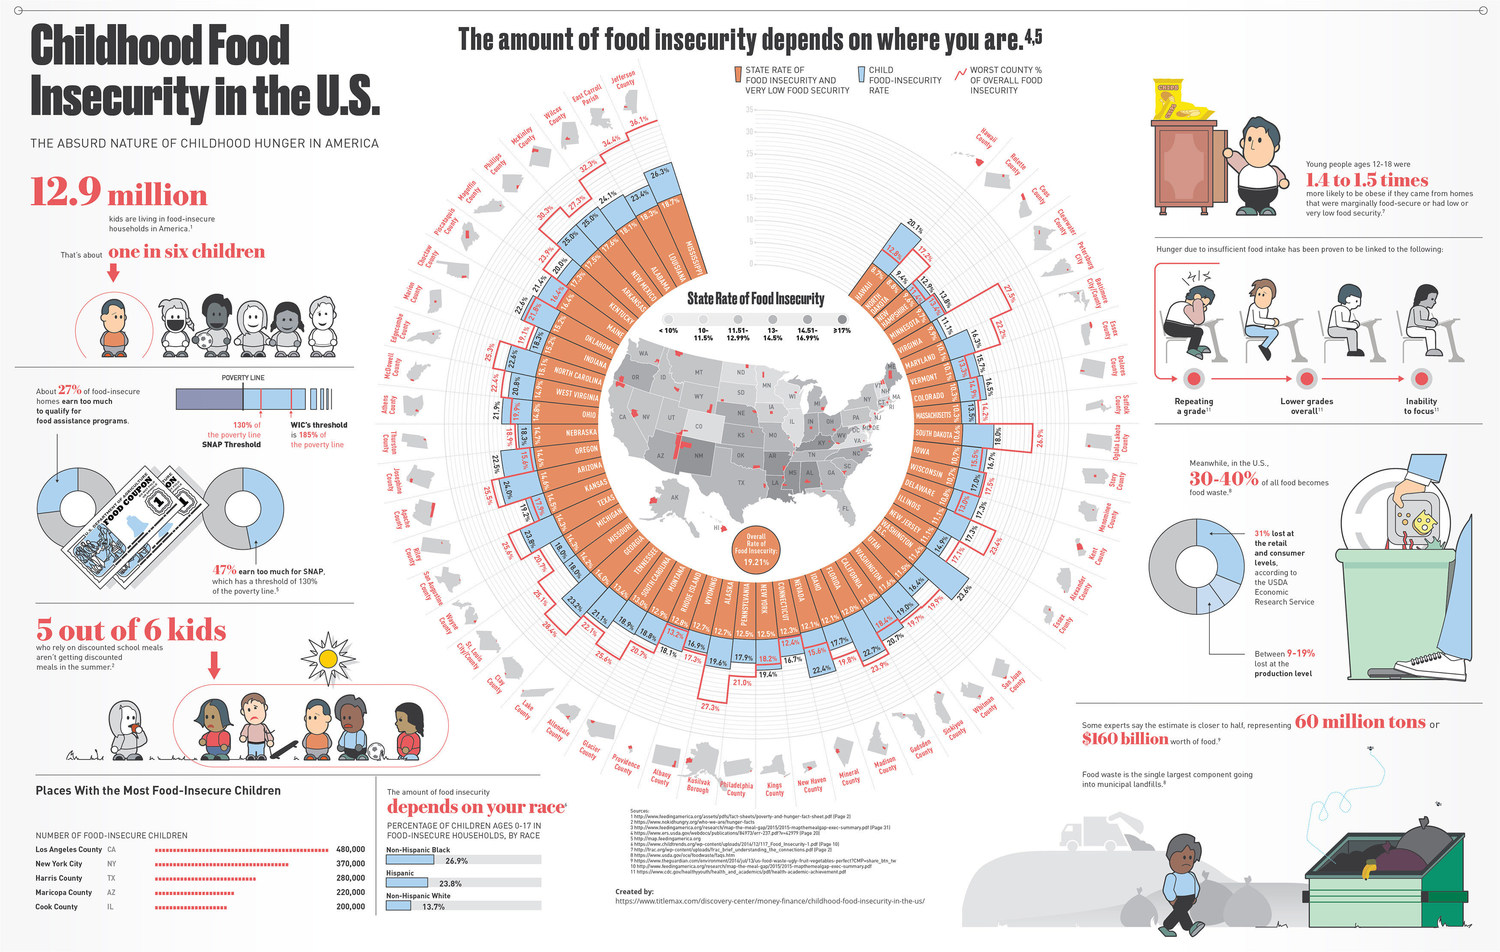 Food Insecurity in the U.S.